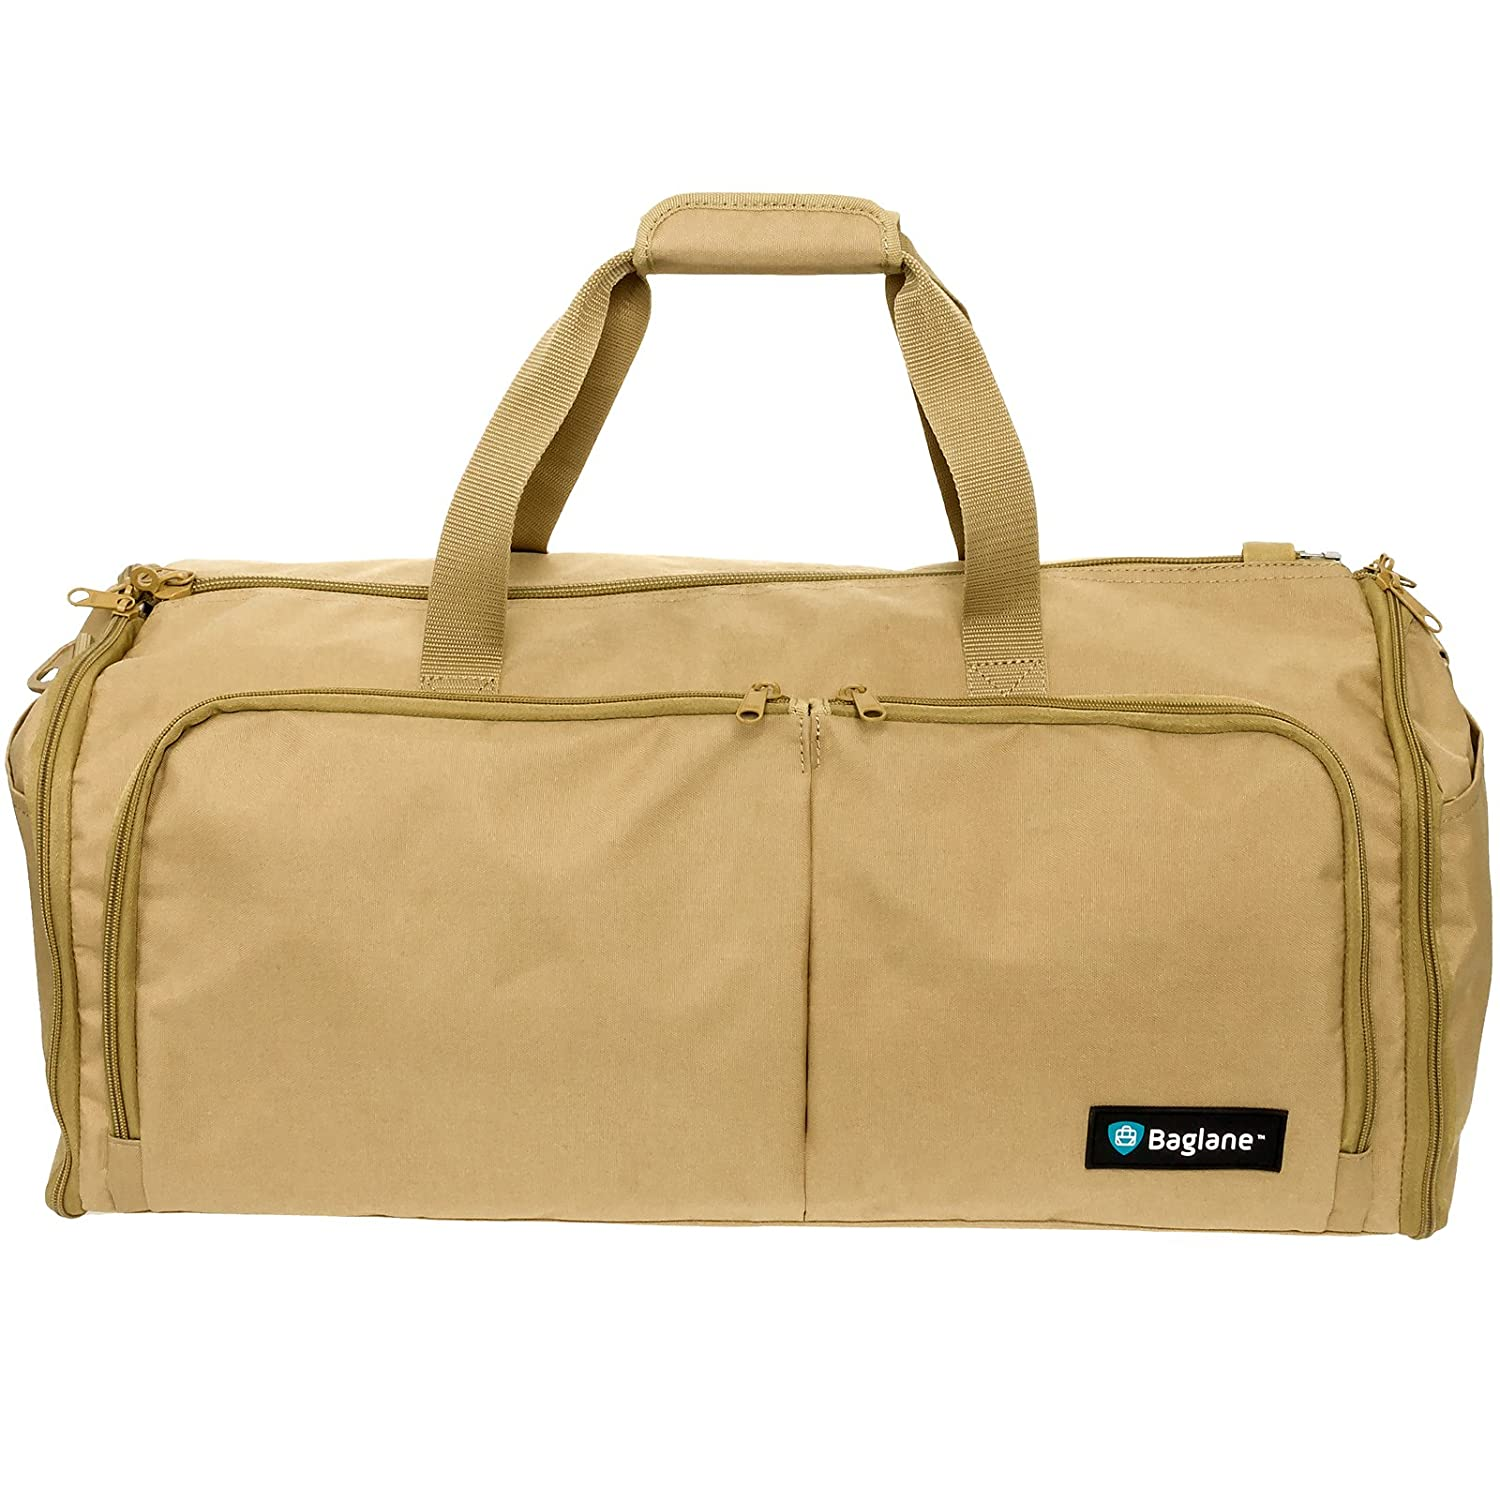 Carry on Suit Travel Bag by Baglane - Military Garment Bag (Coyote Brown)